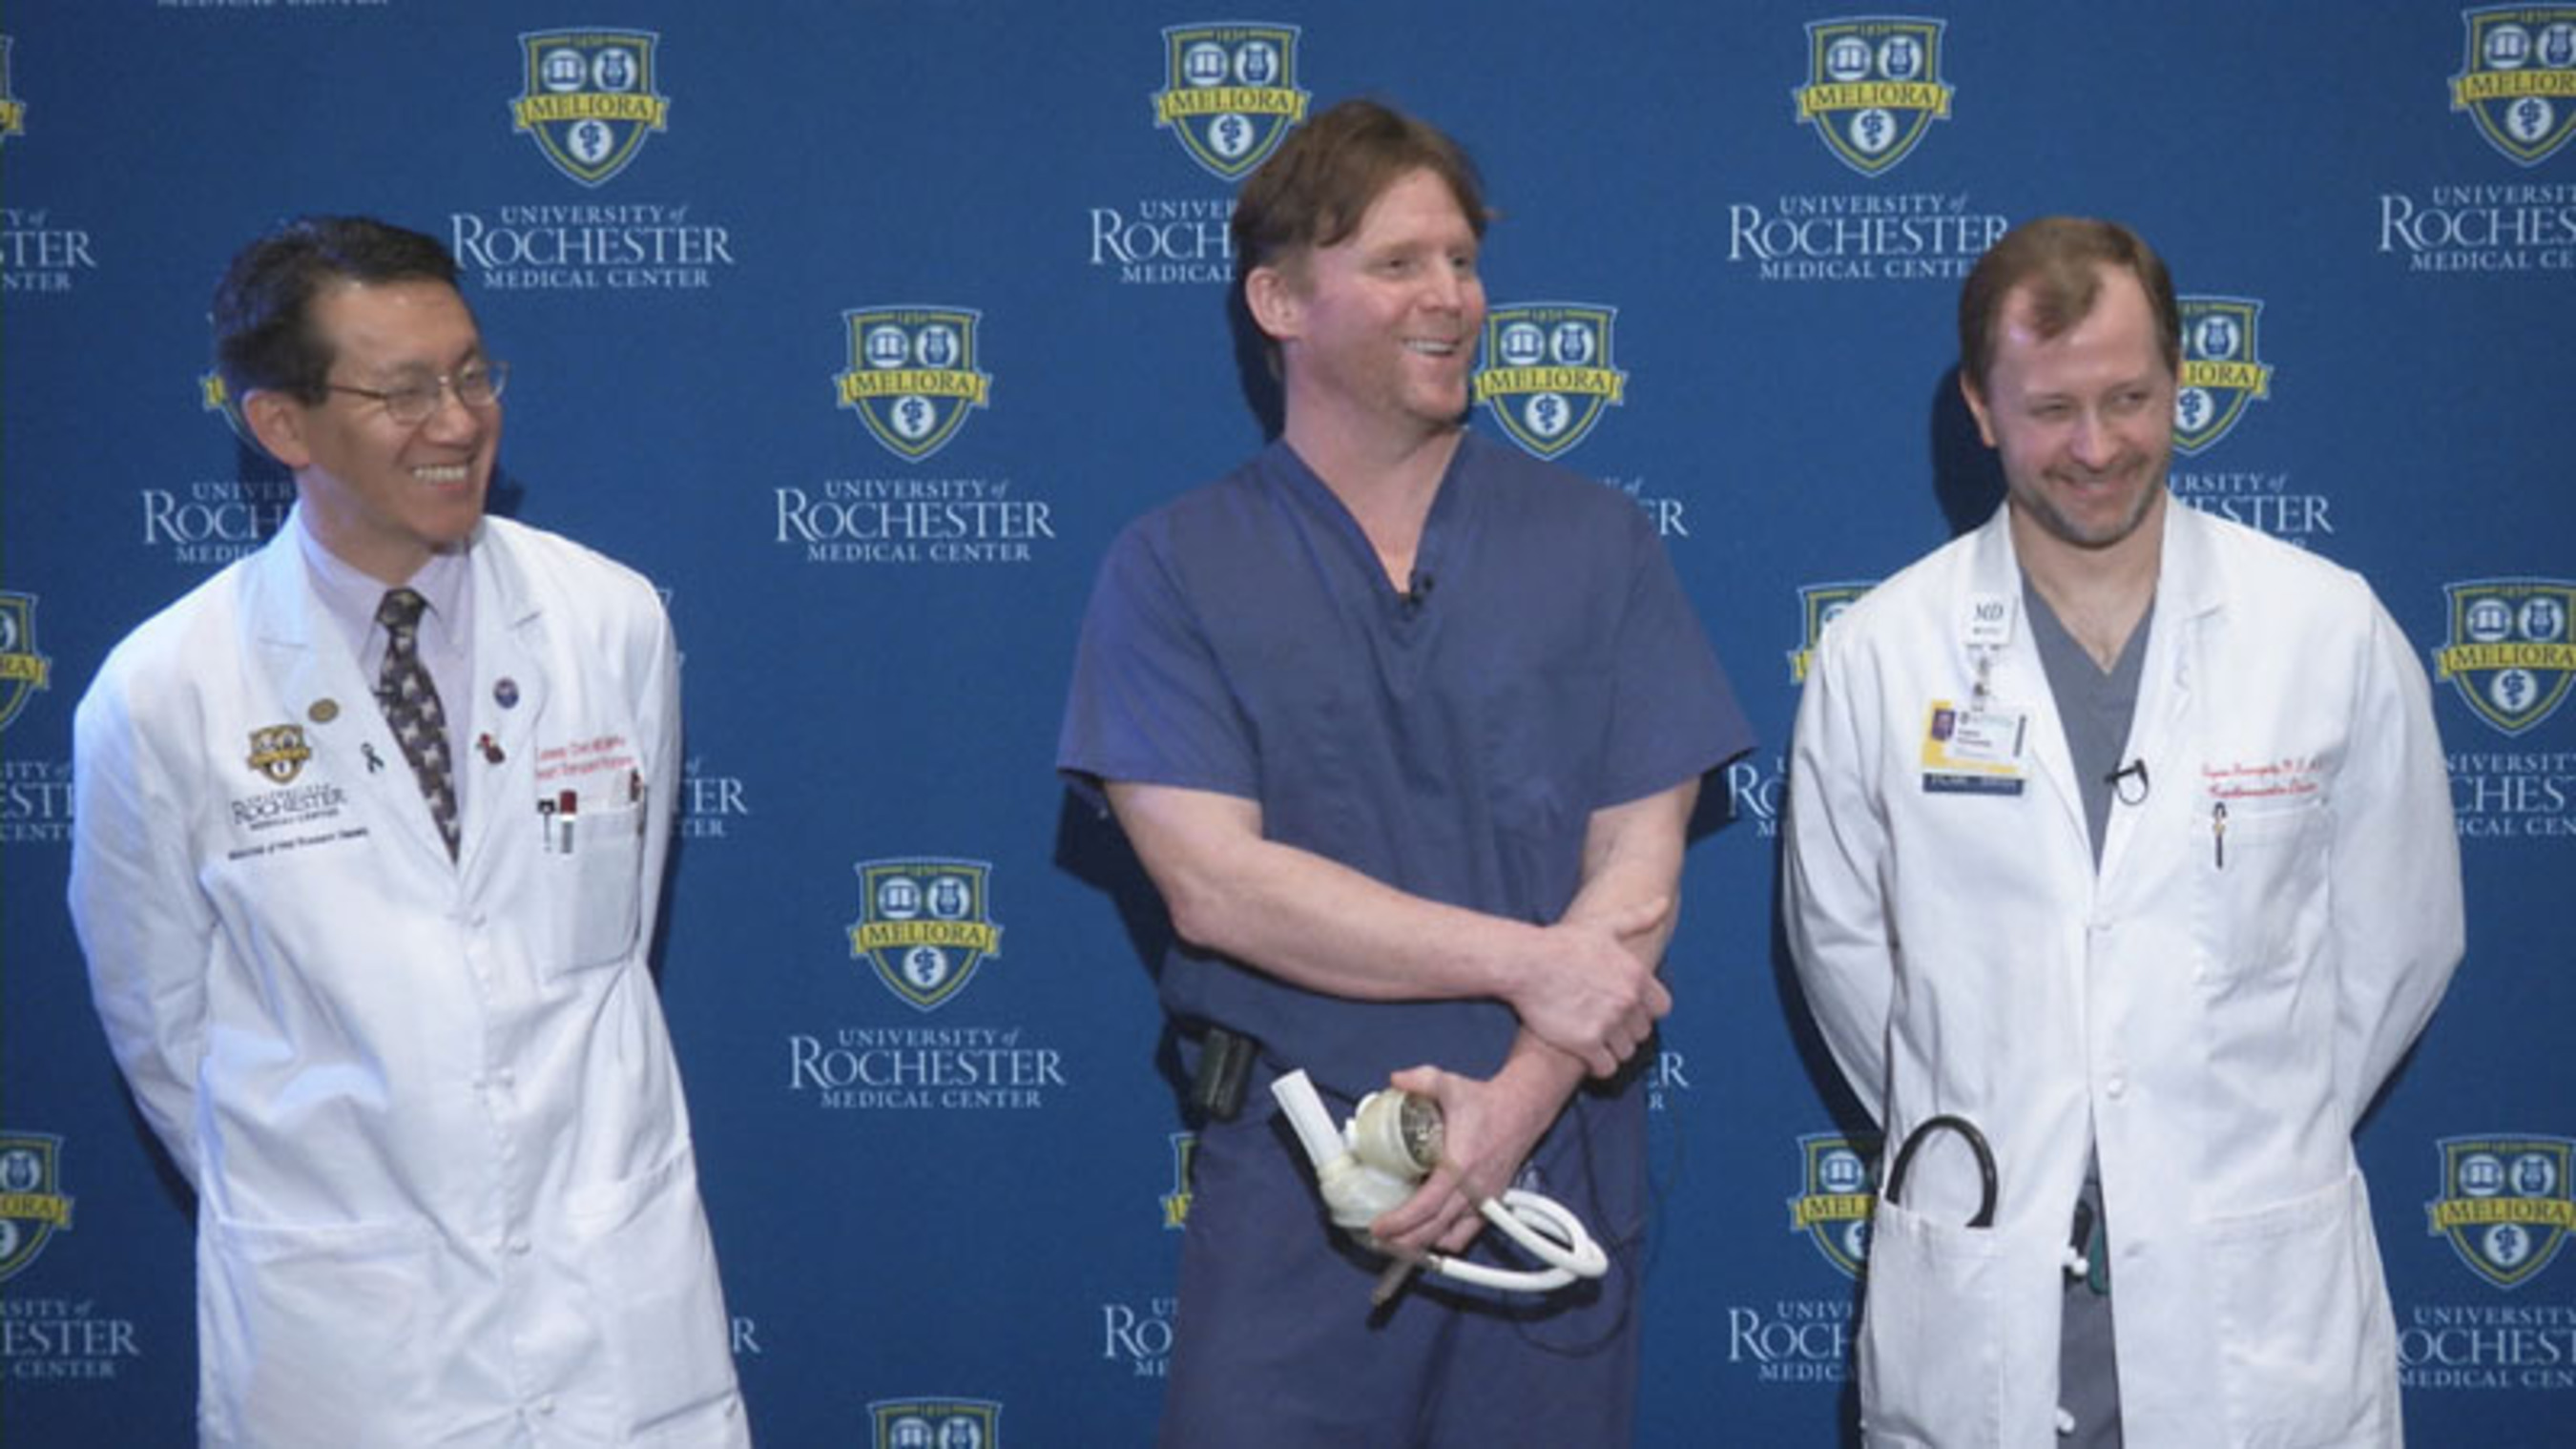 On April 11, 2012, University of Rochester Medical Center announced its first implant of the SynCardia temporary Total Artificial Heart at a news conference. L to R: Leway Chen, M.D., M.P.H., medical director of the Artificial Heart Program, H. Todd Massey, M.D., surgical director of the Artificial Heart Program and Eugene Storozynsky, M.D., Ph.D., transplant cardiologist with the Artificial Heart Program.  (PRNewsFoto/SynCardia Systems, Inc.)